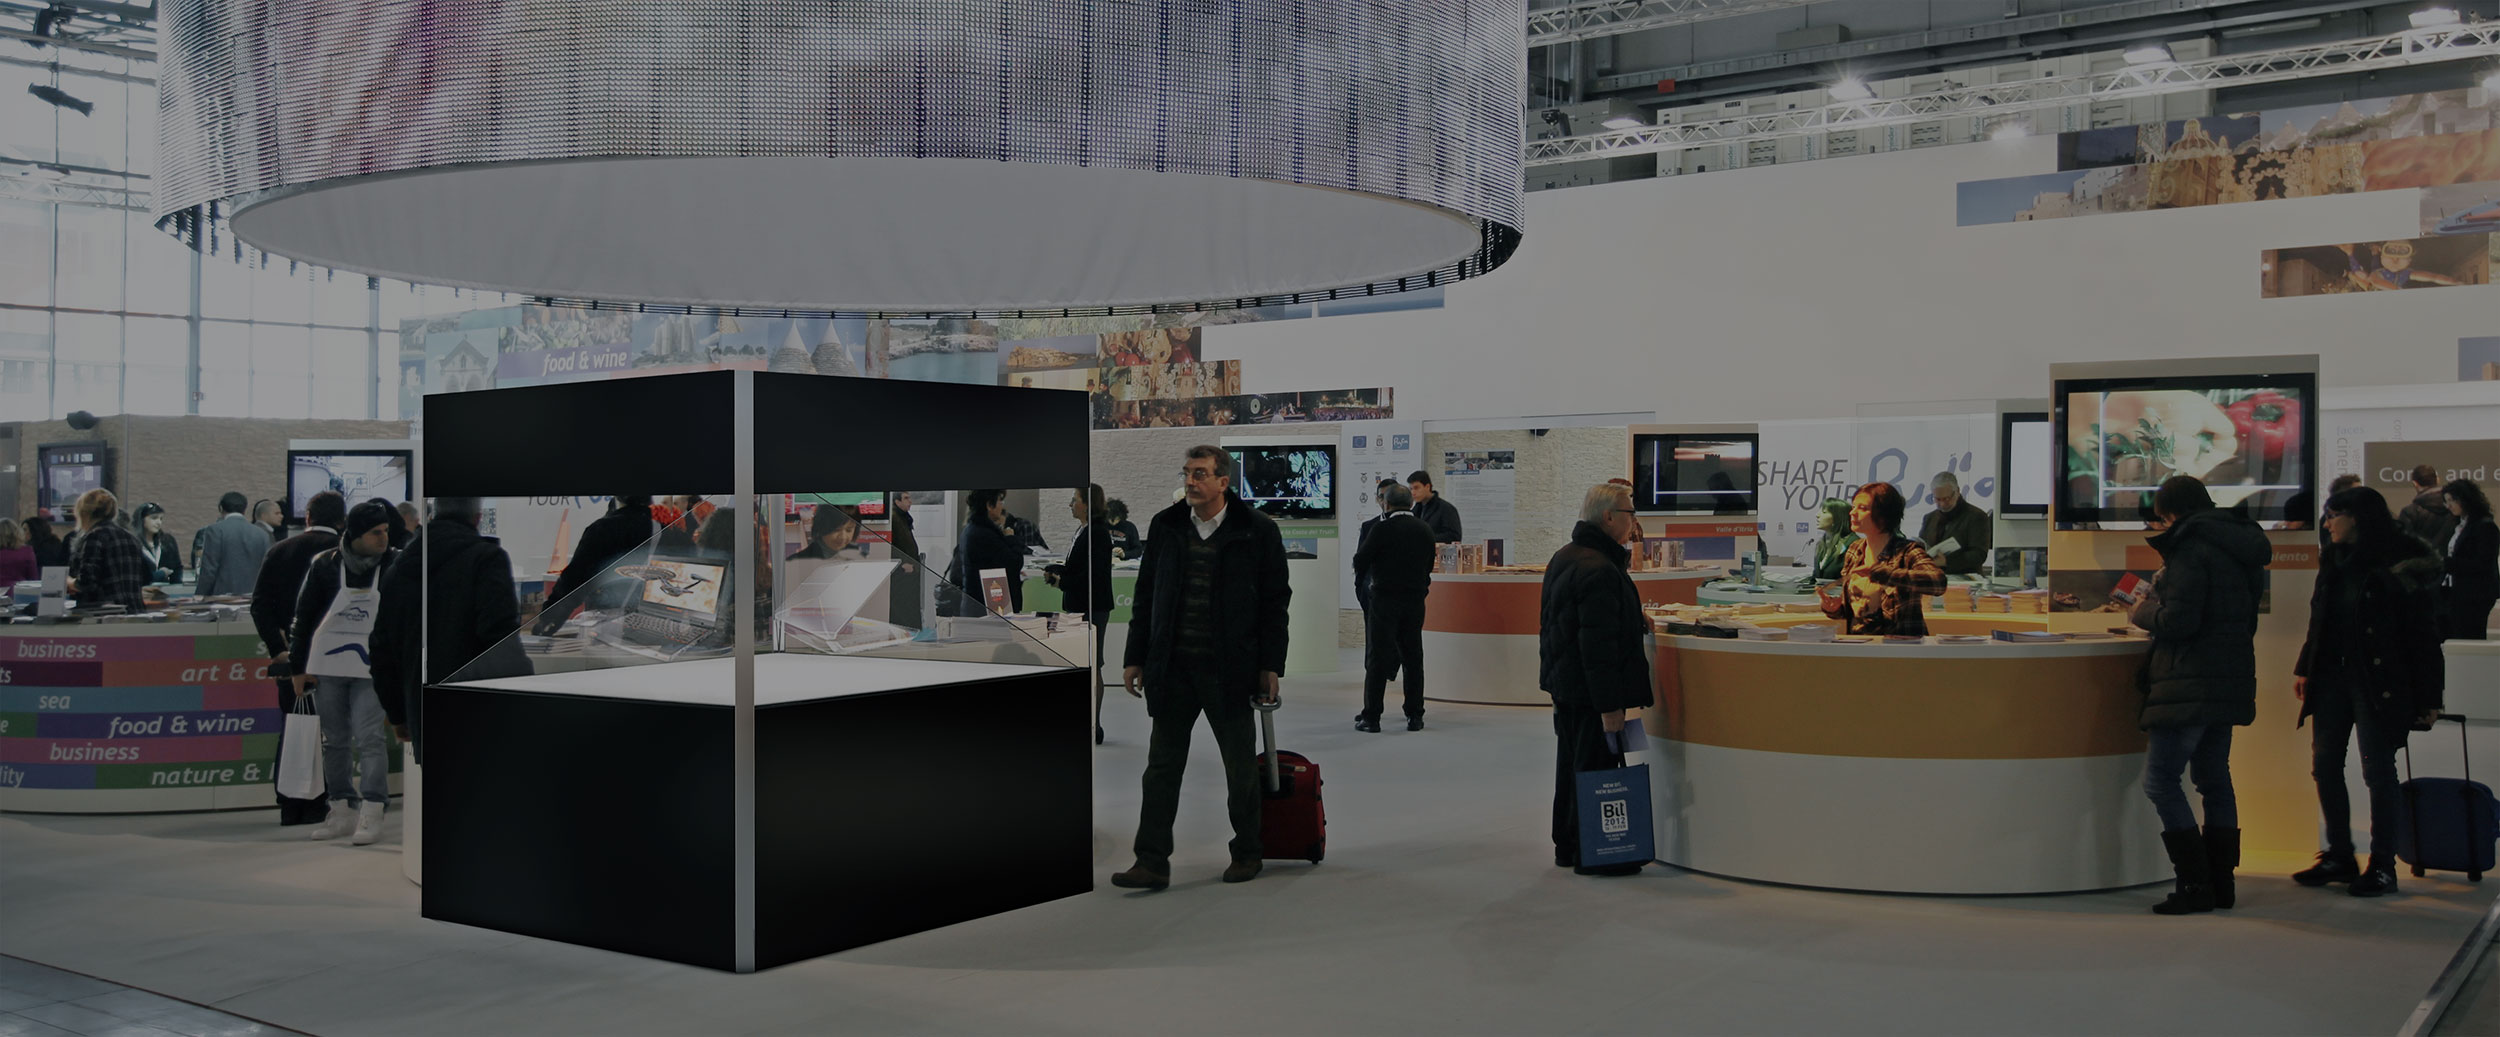 Making an impression with your trade show stand